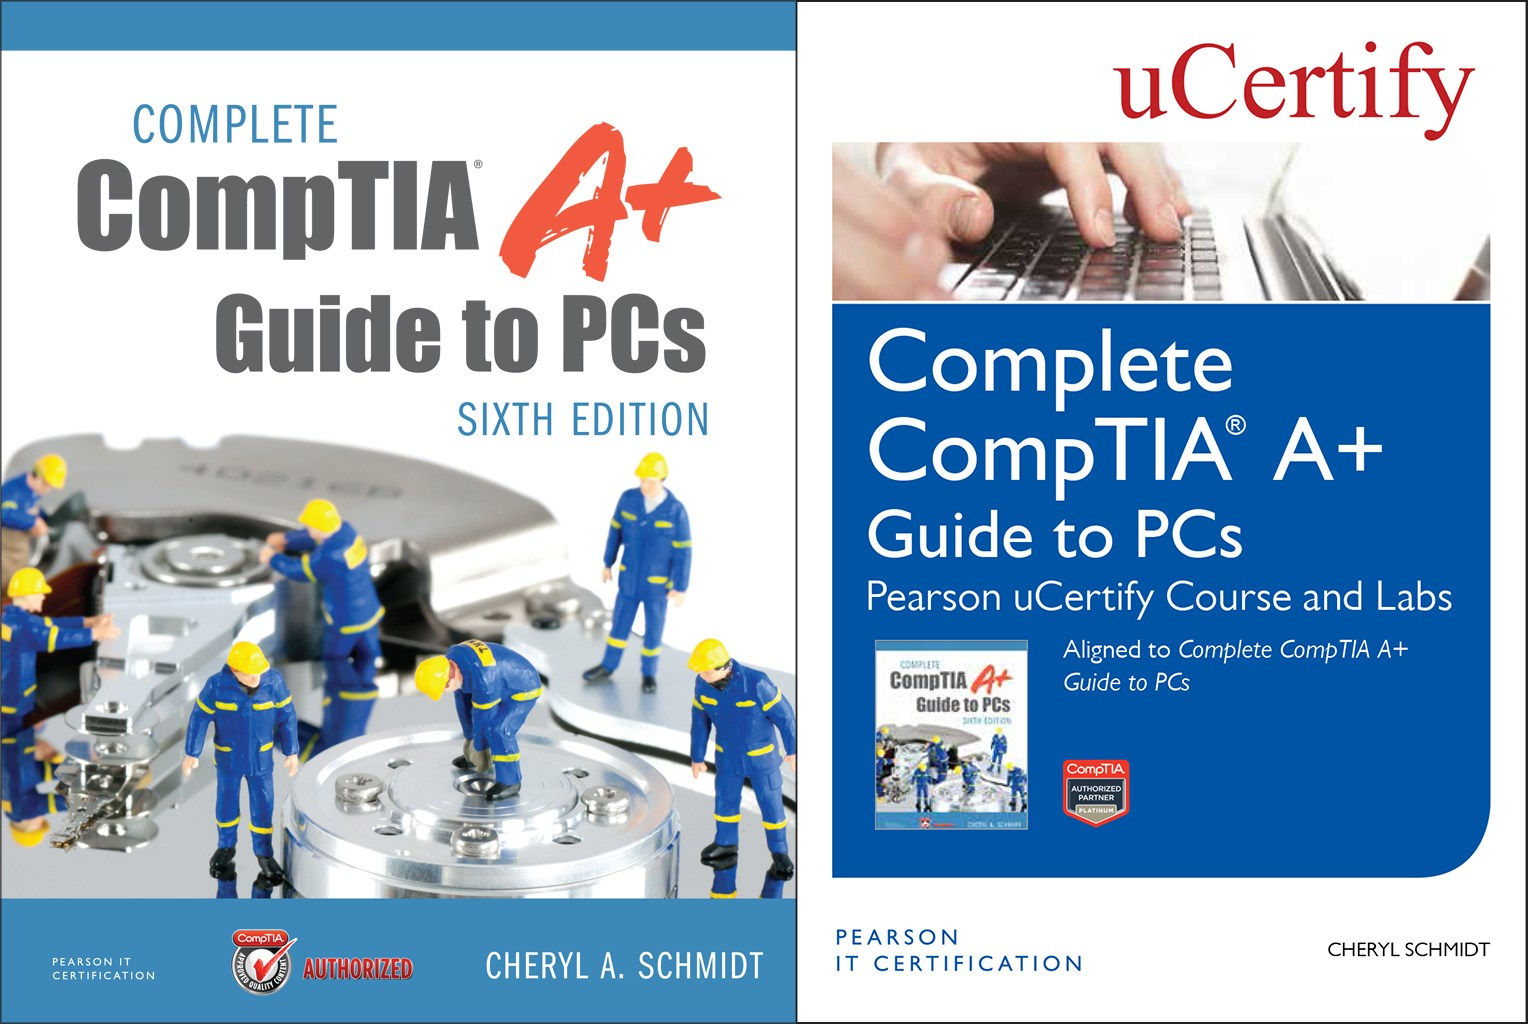 Complete CompTIA A+ Guide to PCs Pearson uCertify Course and Labs and Textbook Bundle